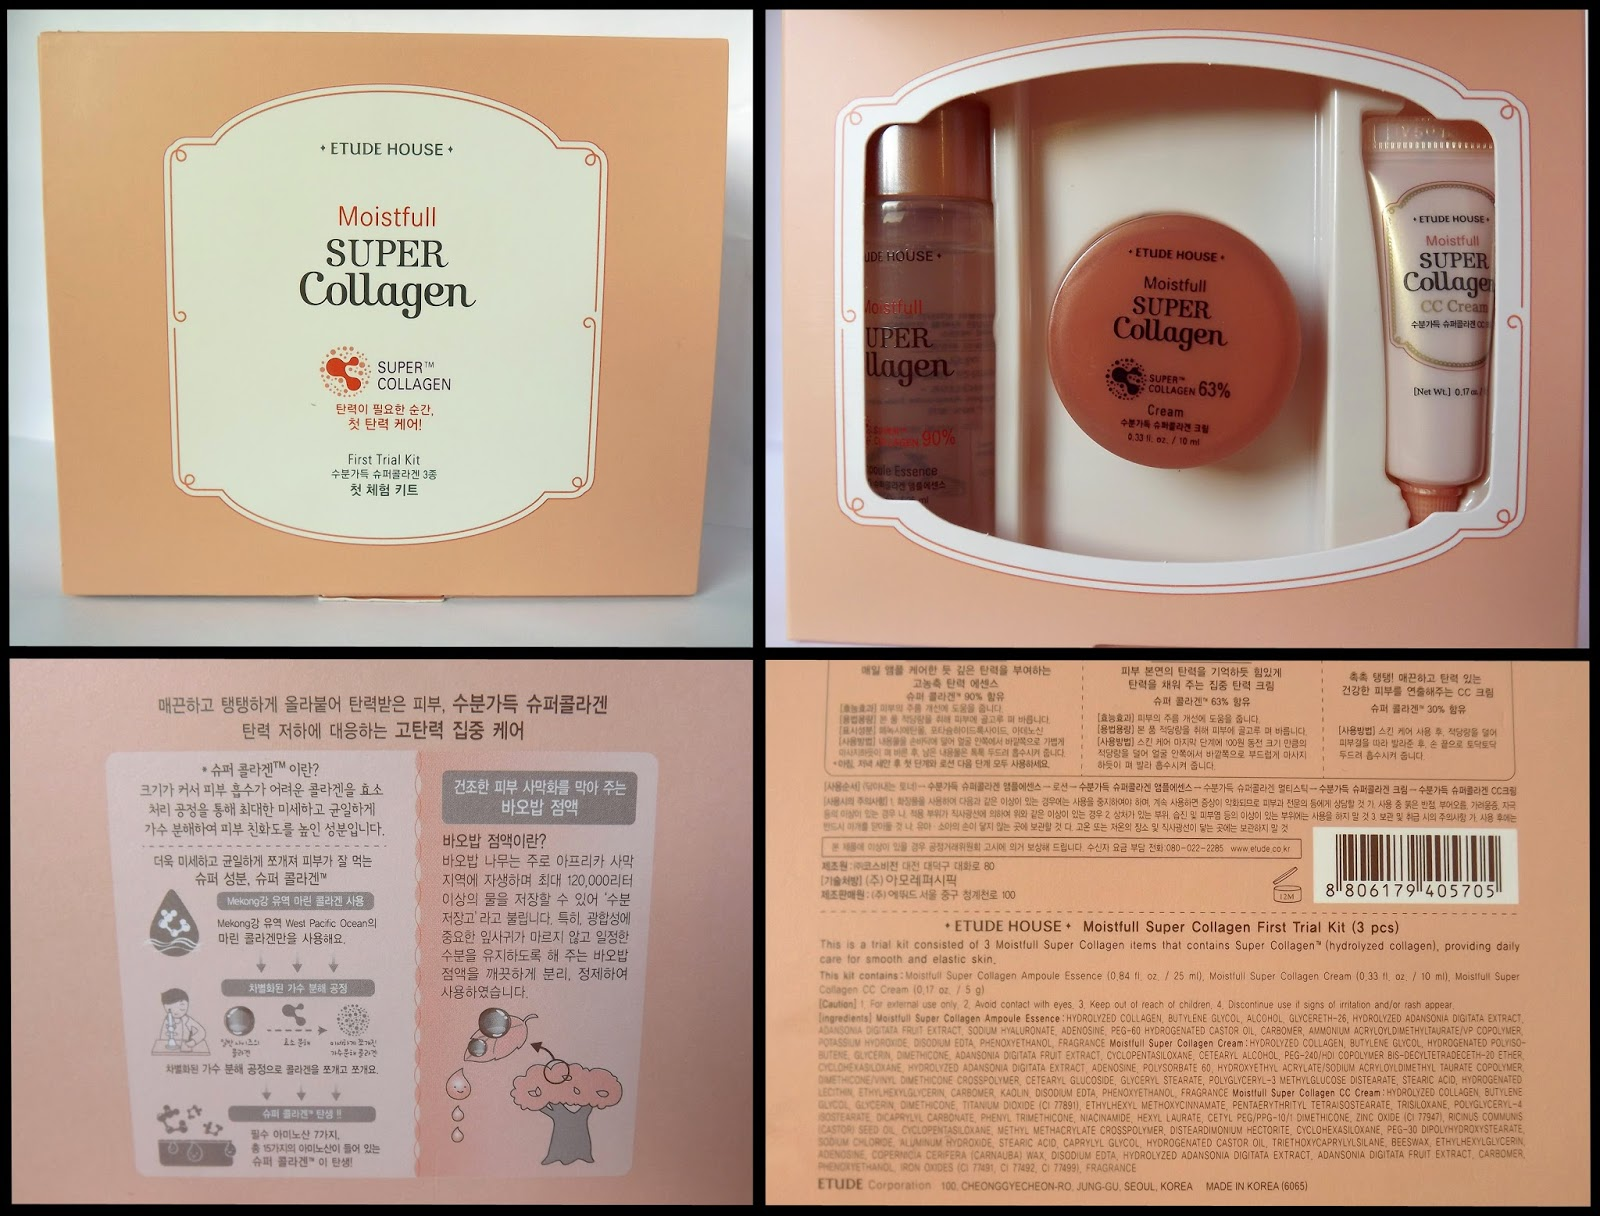 moistfull super collagen trial kit